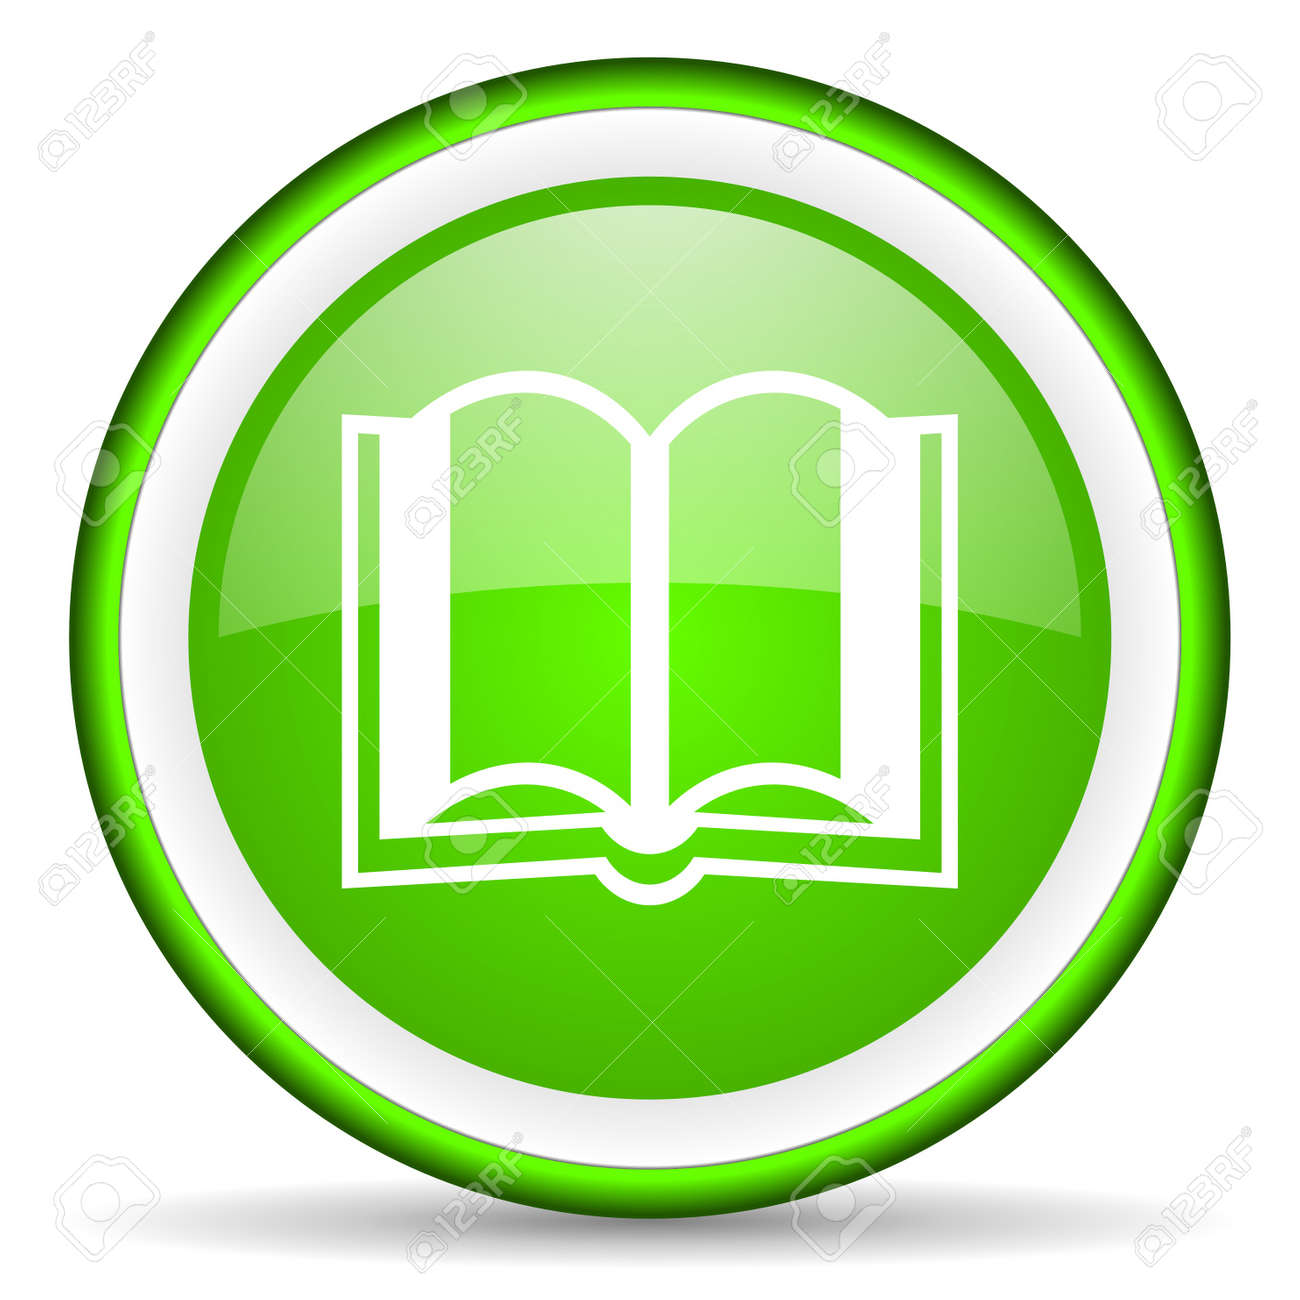 book green glossy icon on white background Stock Photo - 16623064